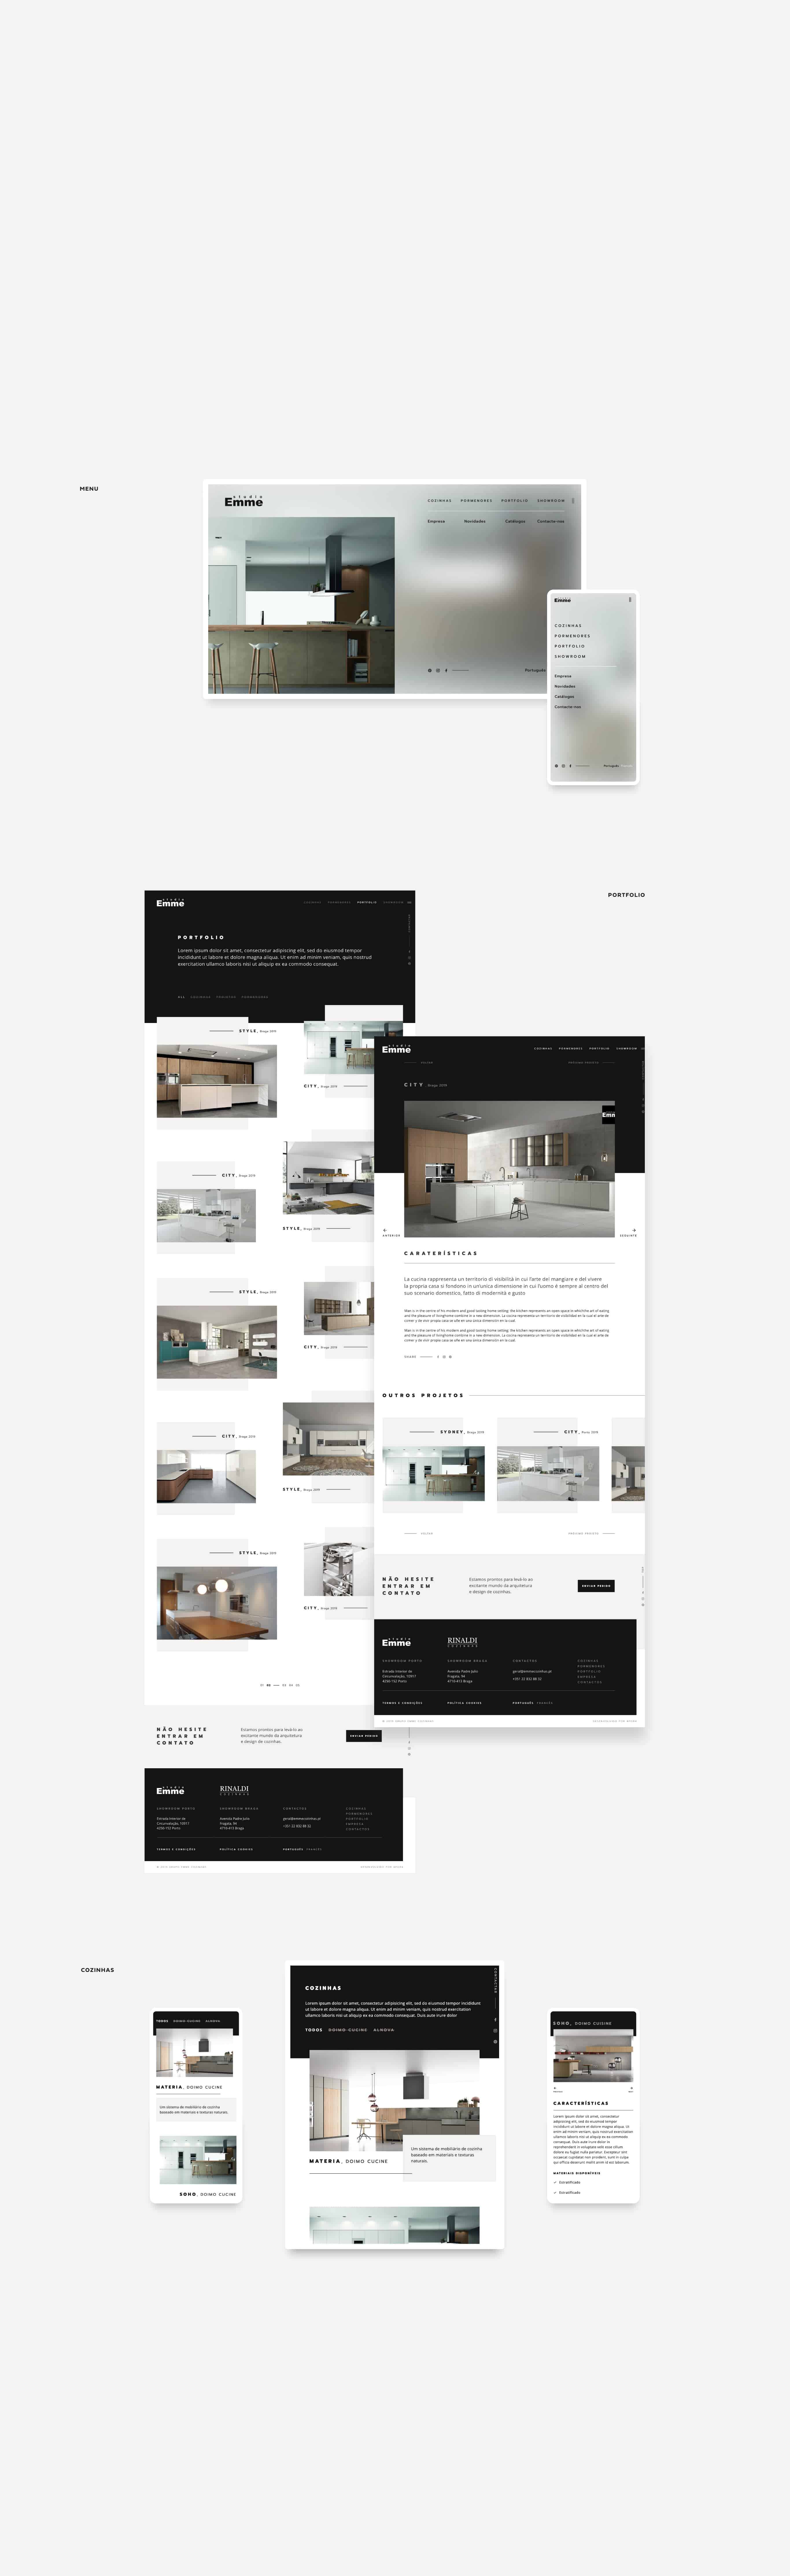 layouts for web pages